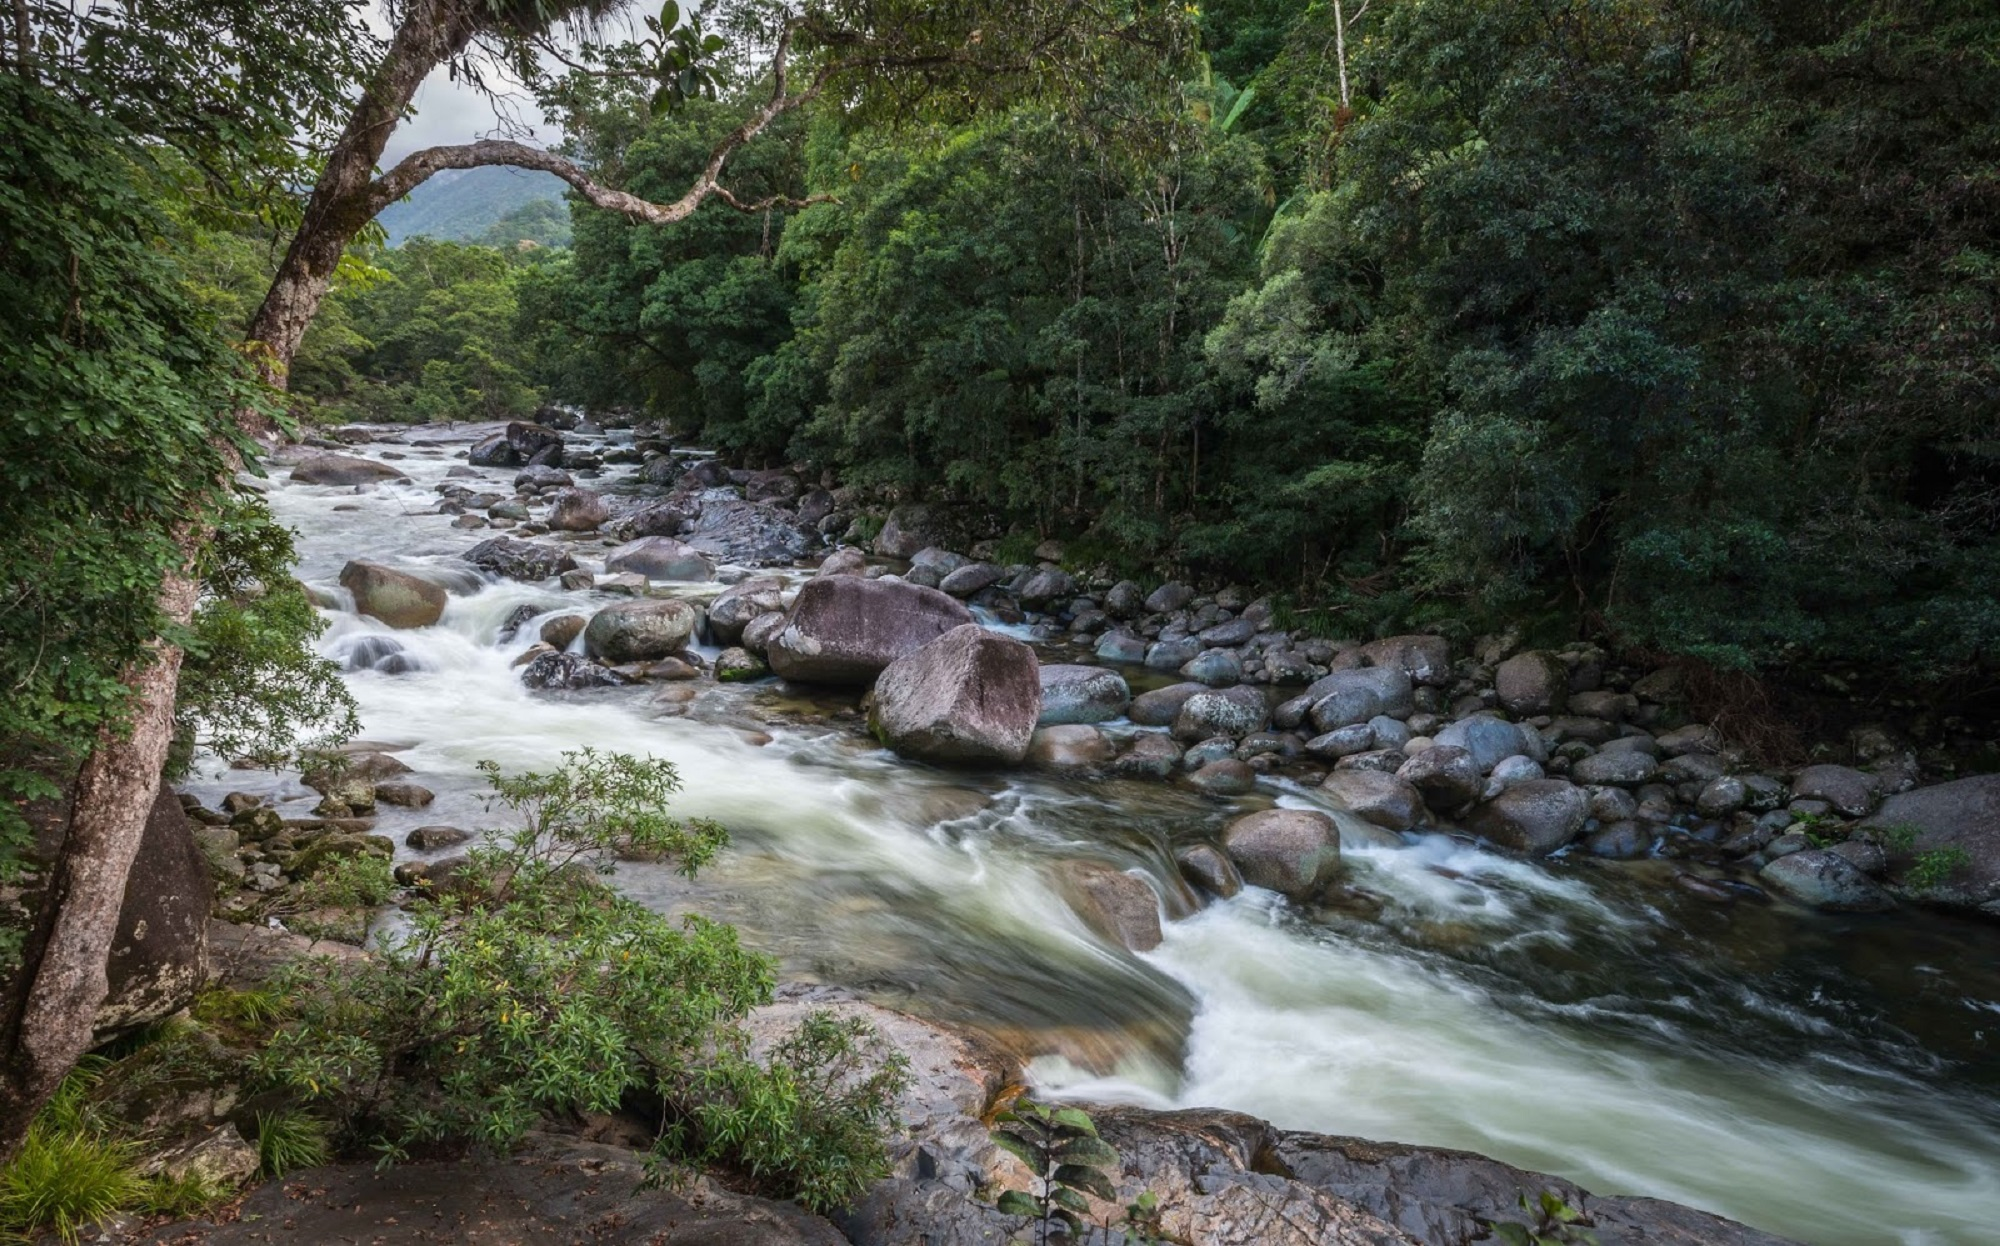 Indigenous Culture and Lush Landscapes at Mossman Gorge